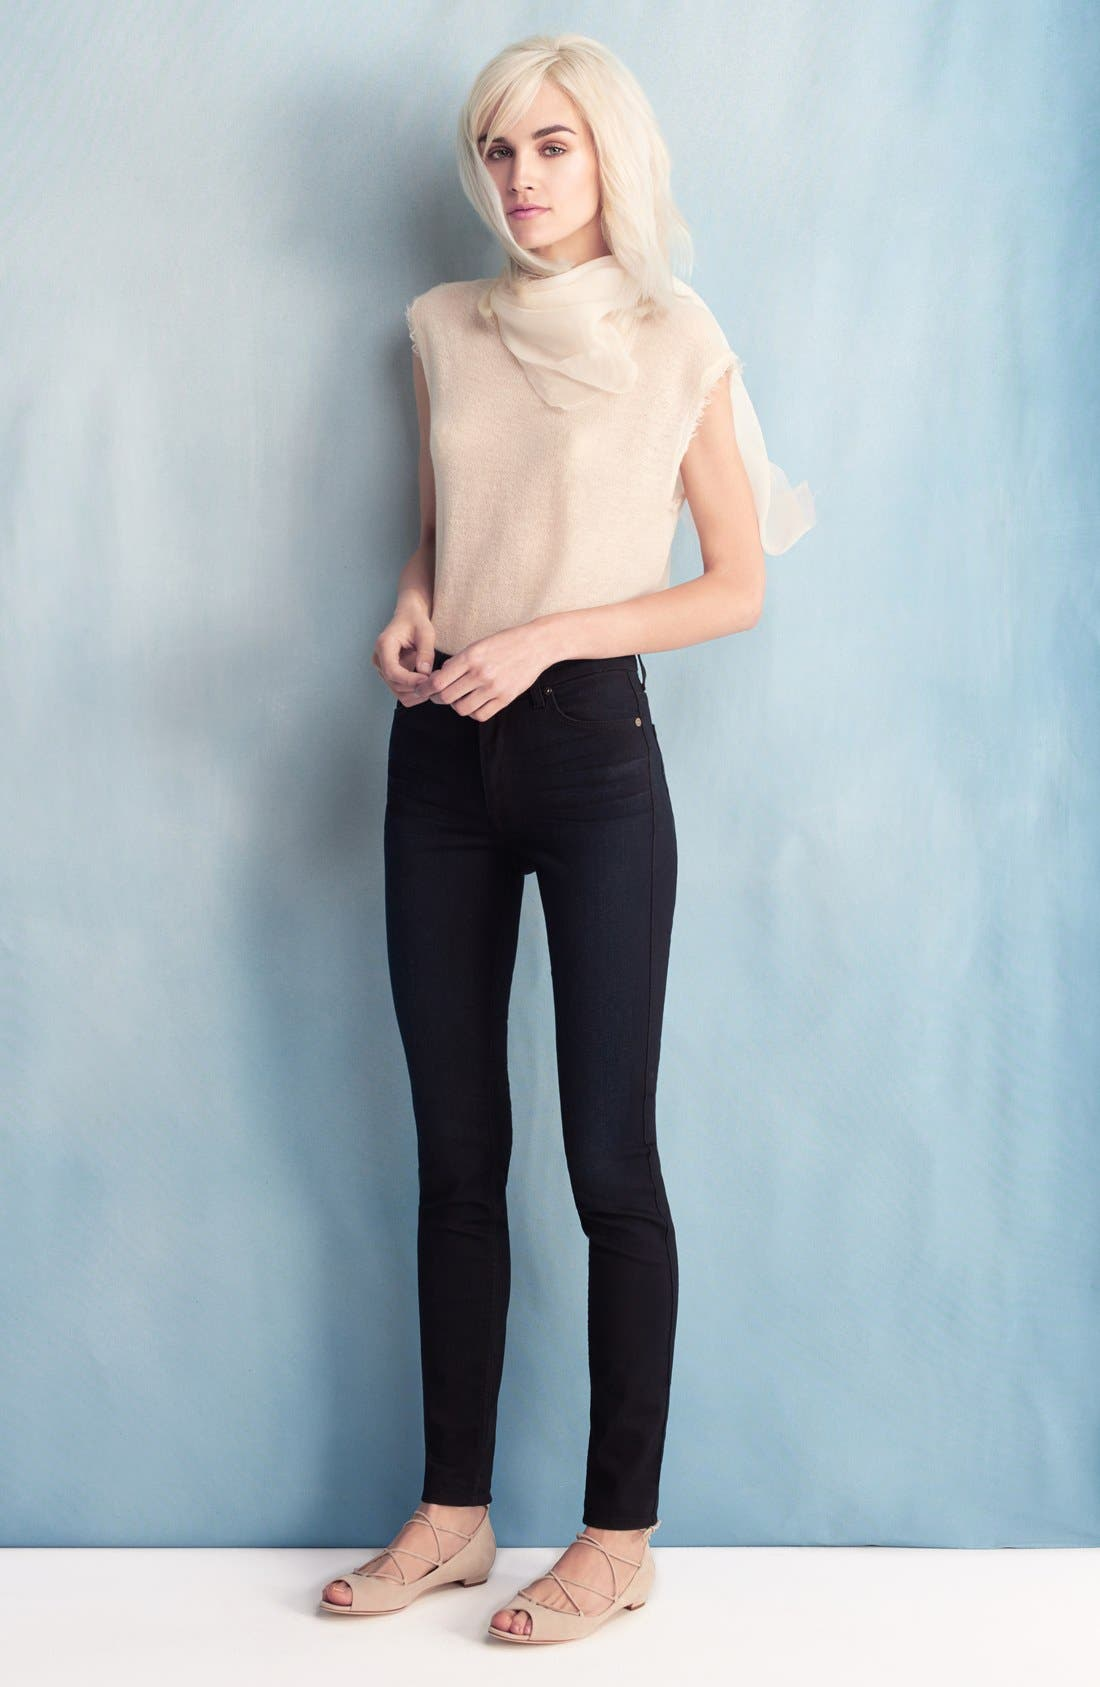 7 For All Mankind b(air) High Waist Skinny Jeans,                             Alternate thumbnail 6, color,                             400